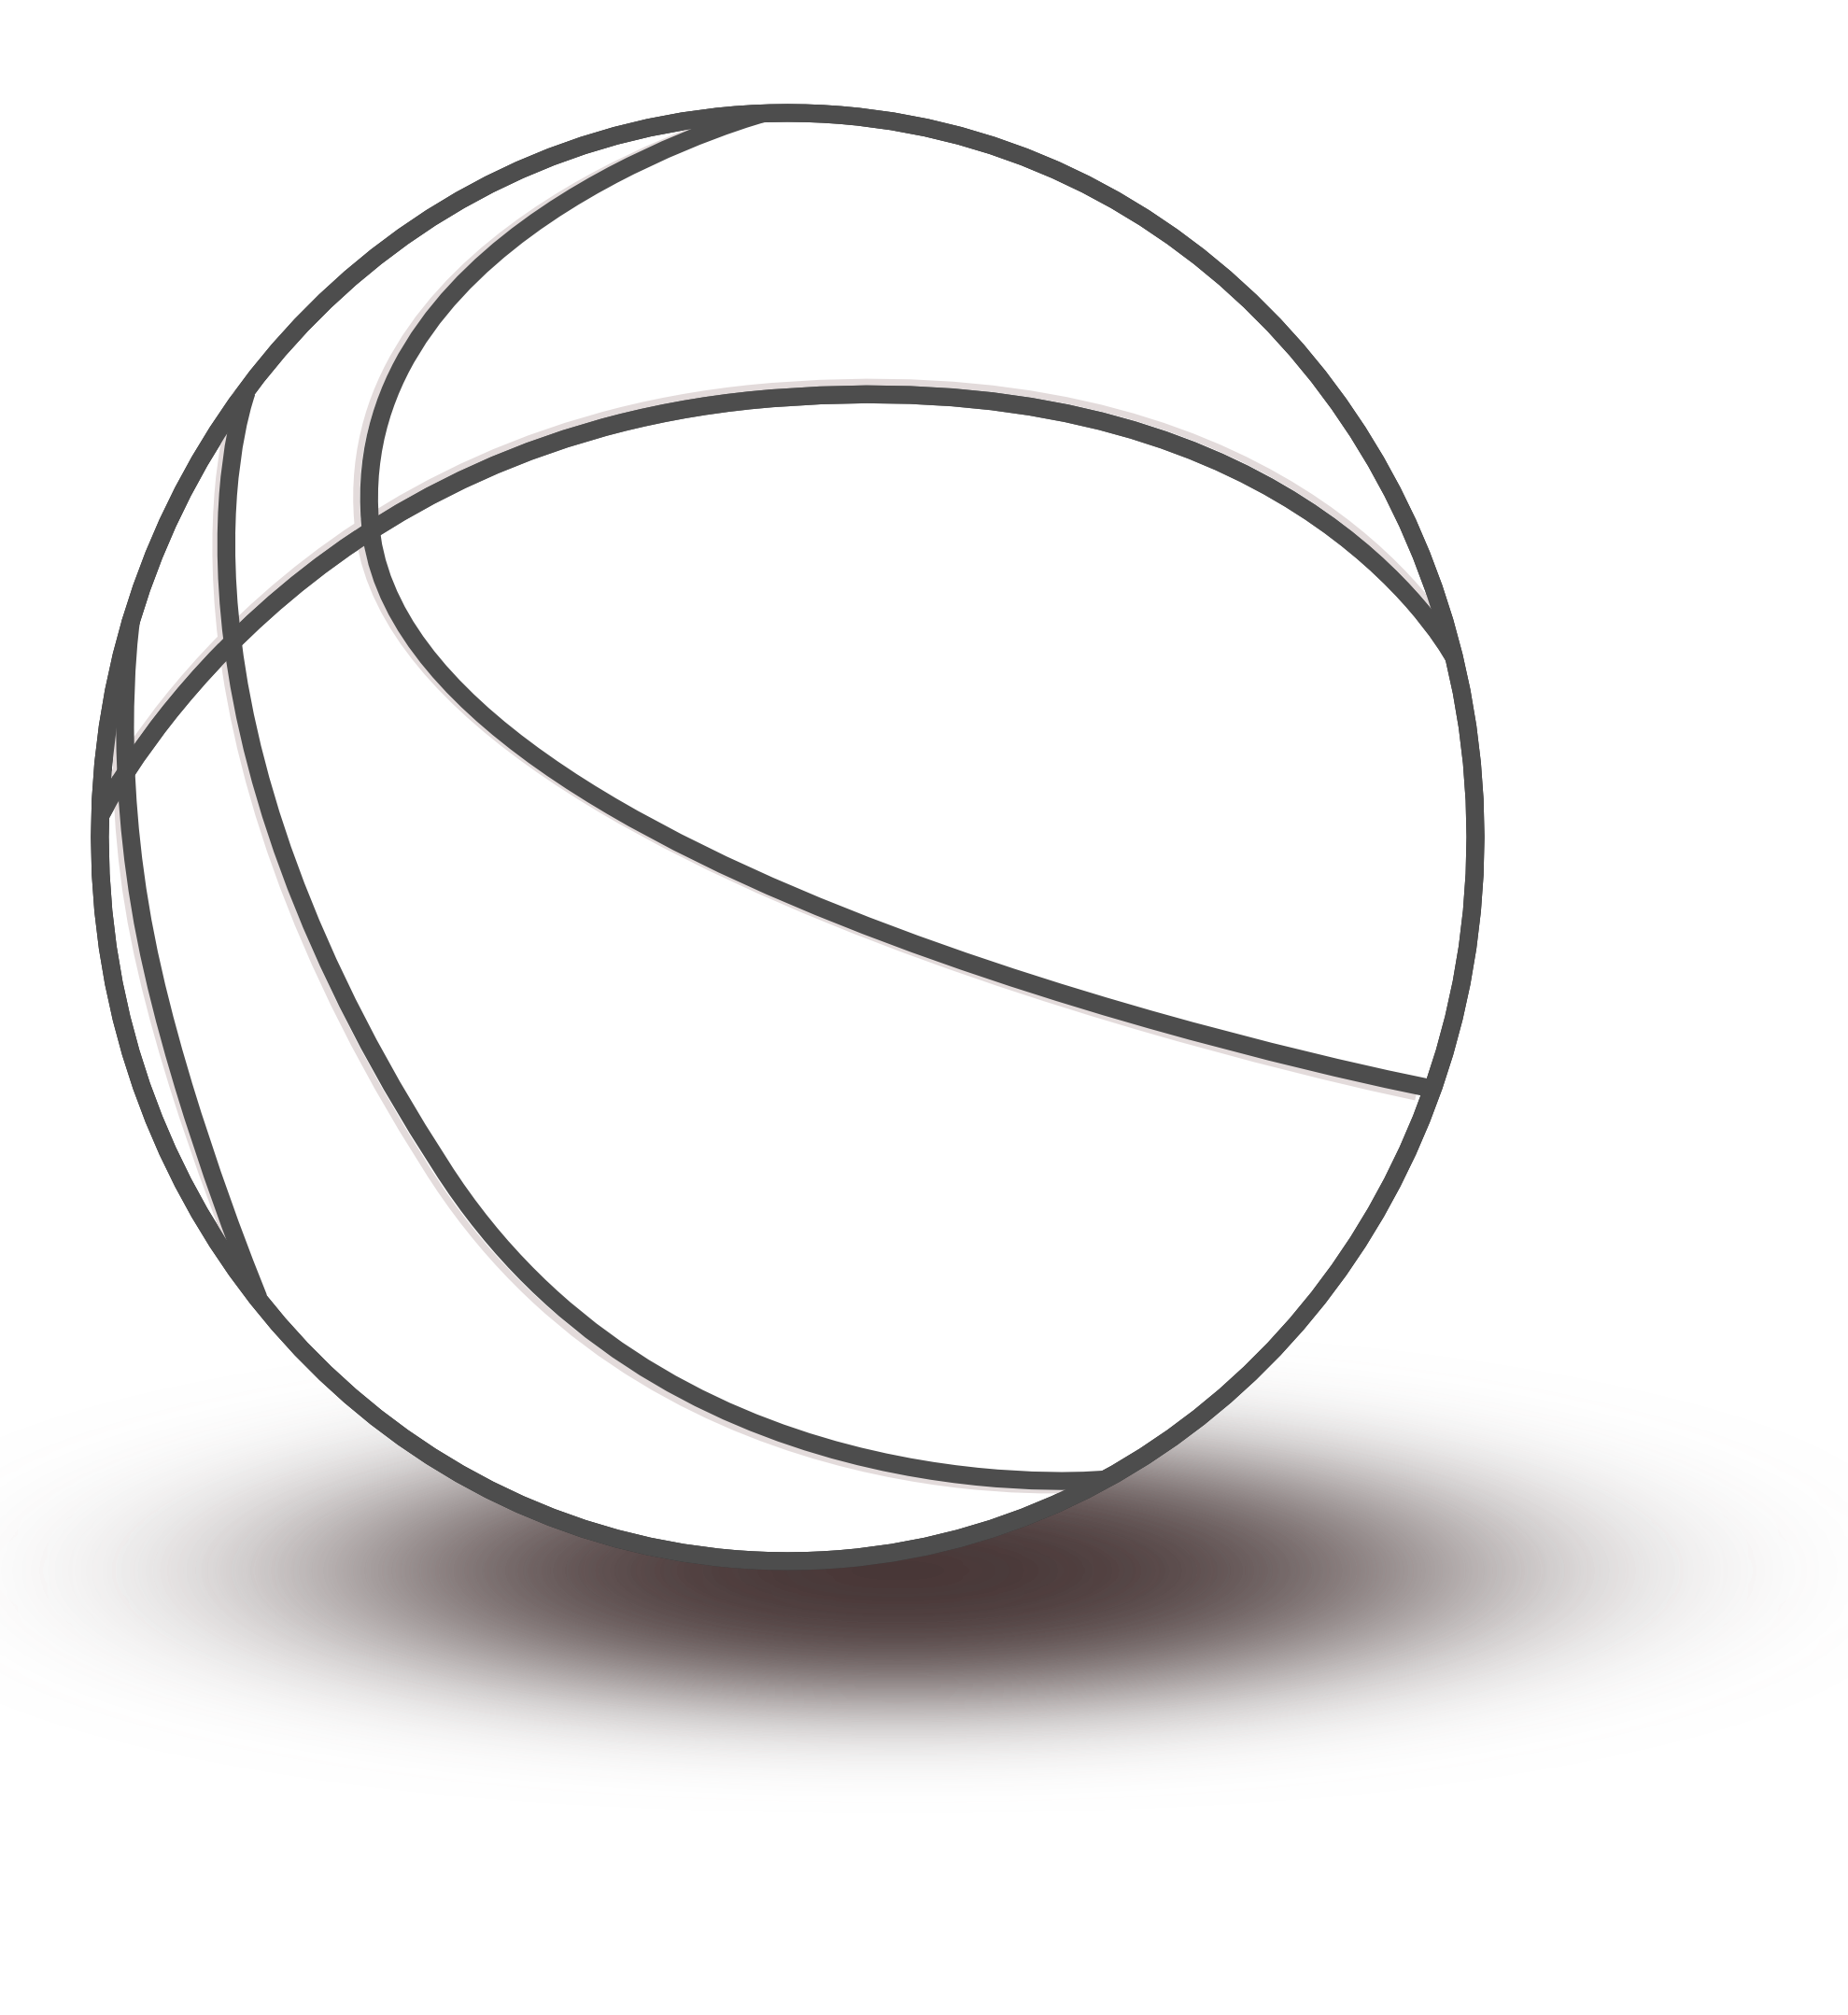 Free Basketball Clipart Black And White - Cliparts.co